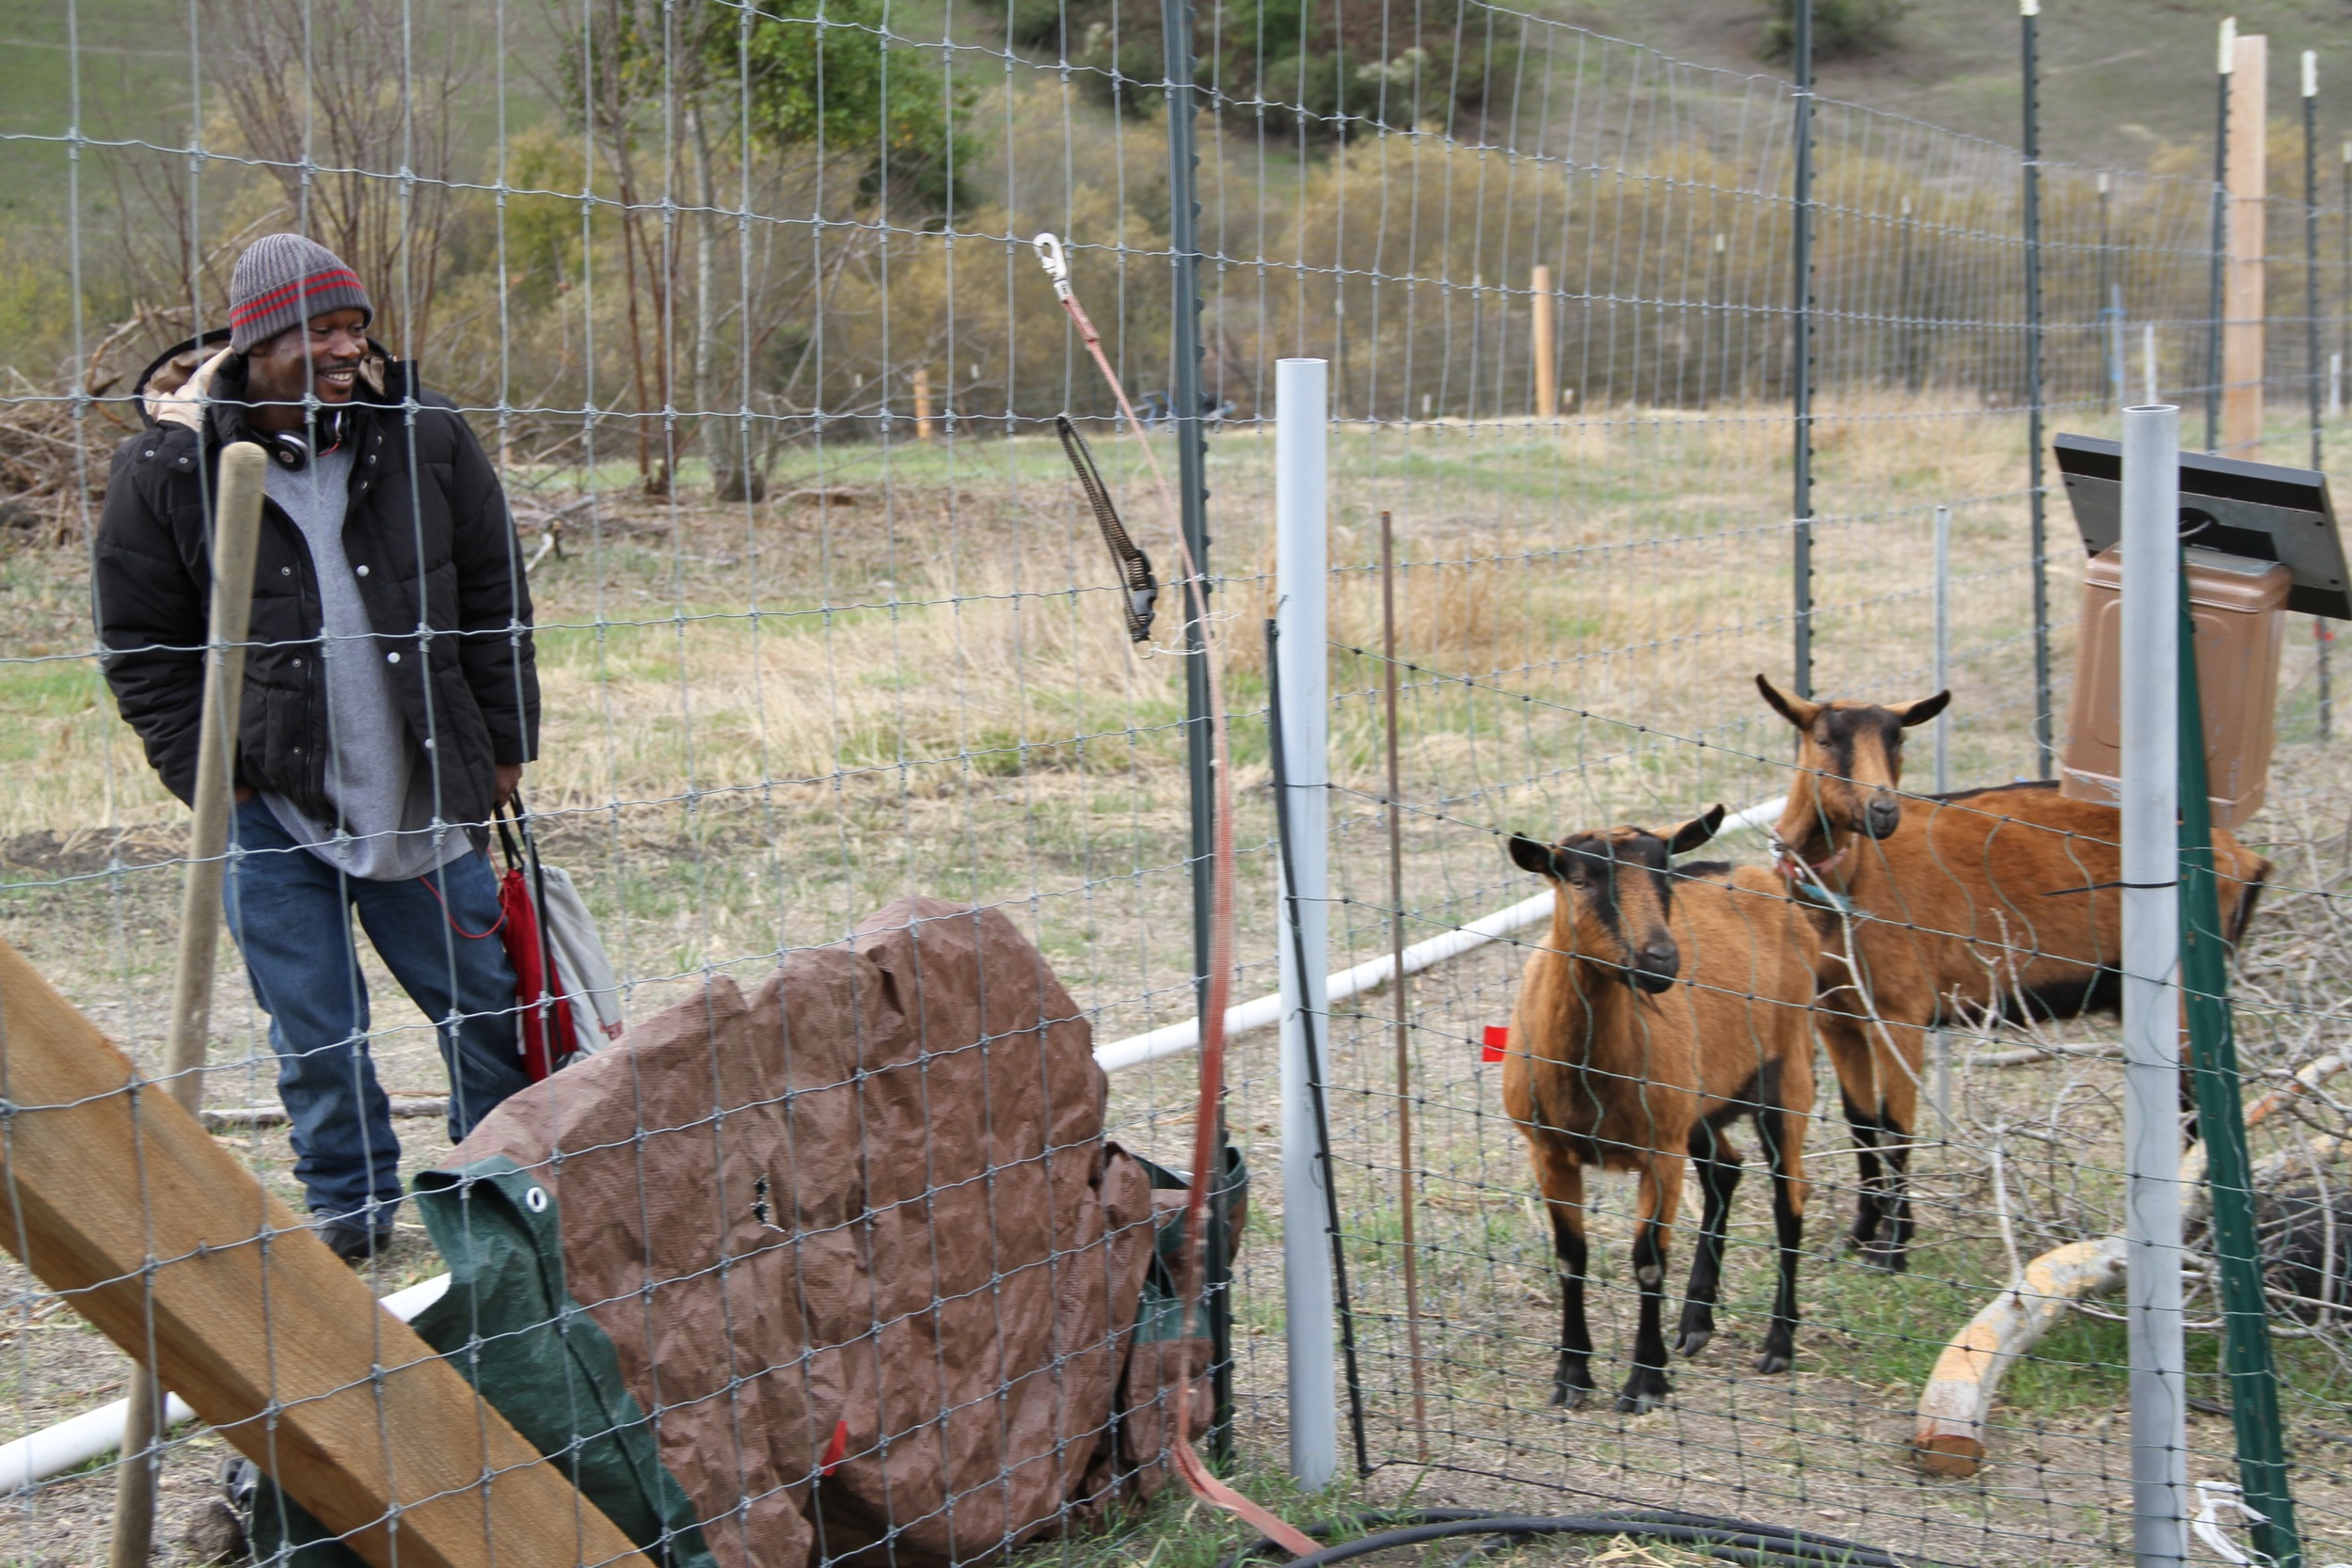 Our newest team member, Bilal, making friends with the goats on his 11th day free after a 20 year prison sentence. This farm is healing for those of us who have been to prison.